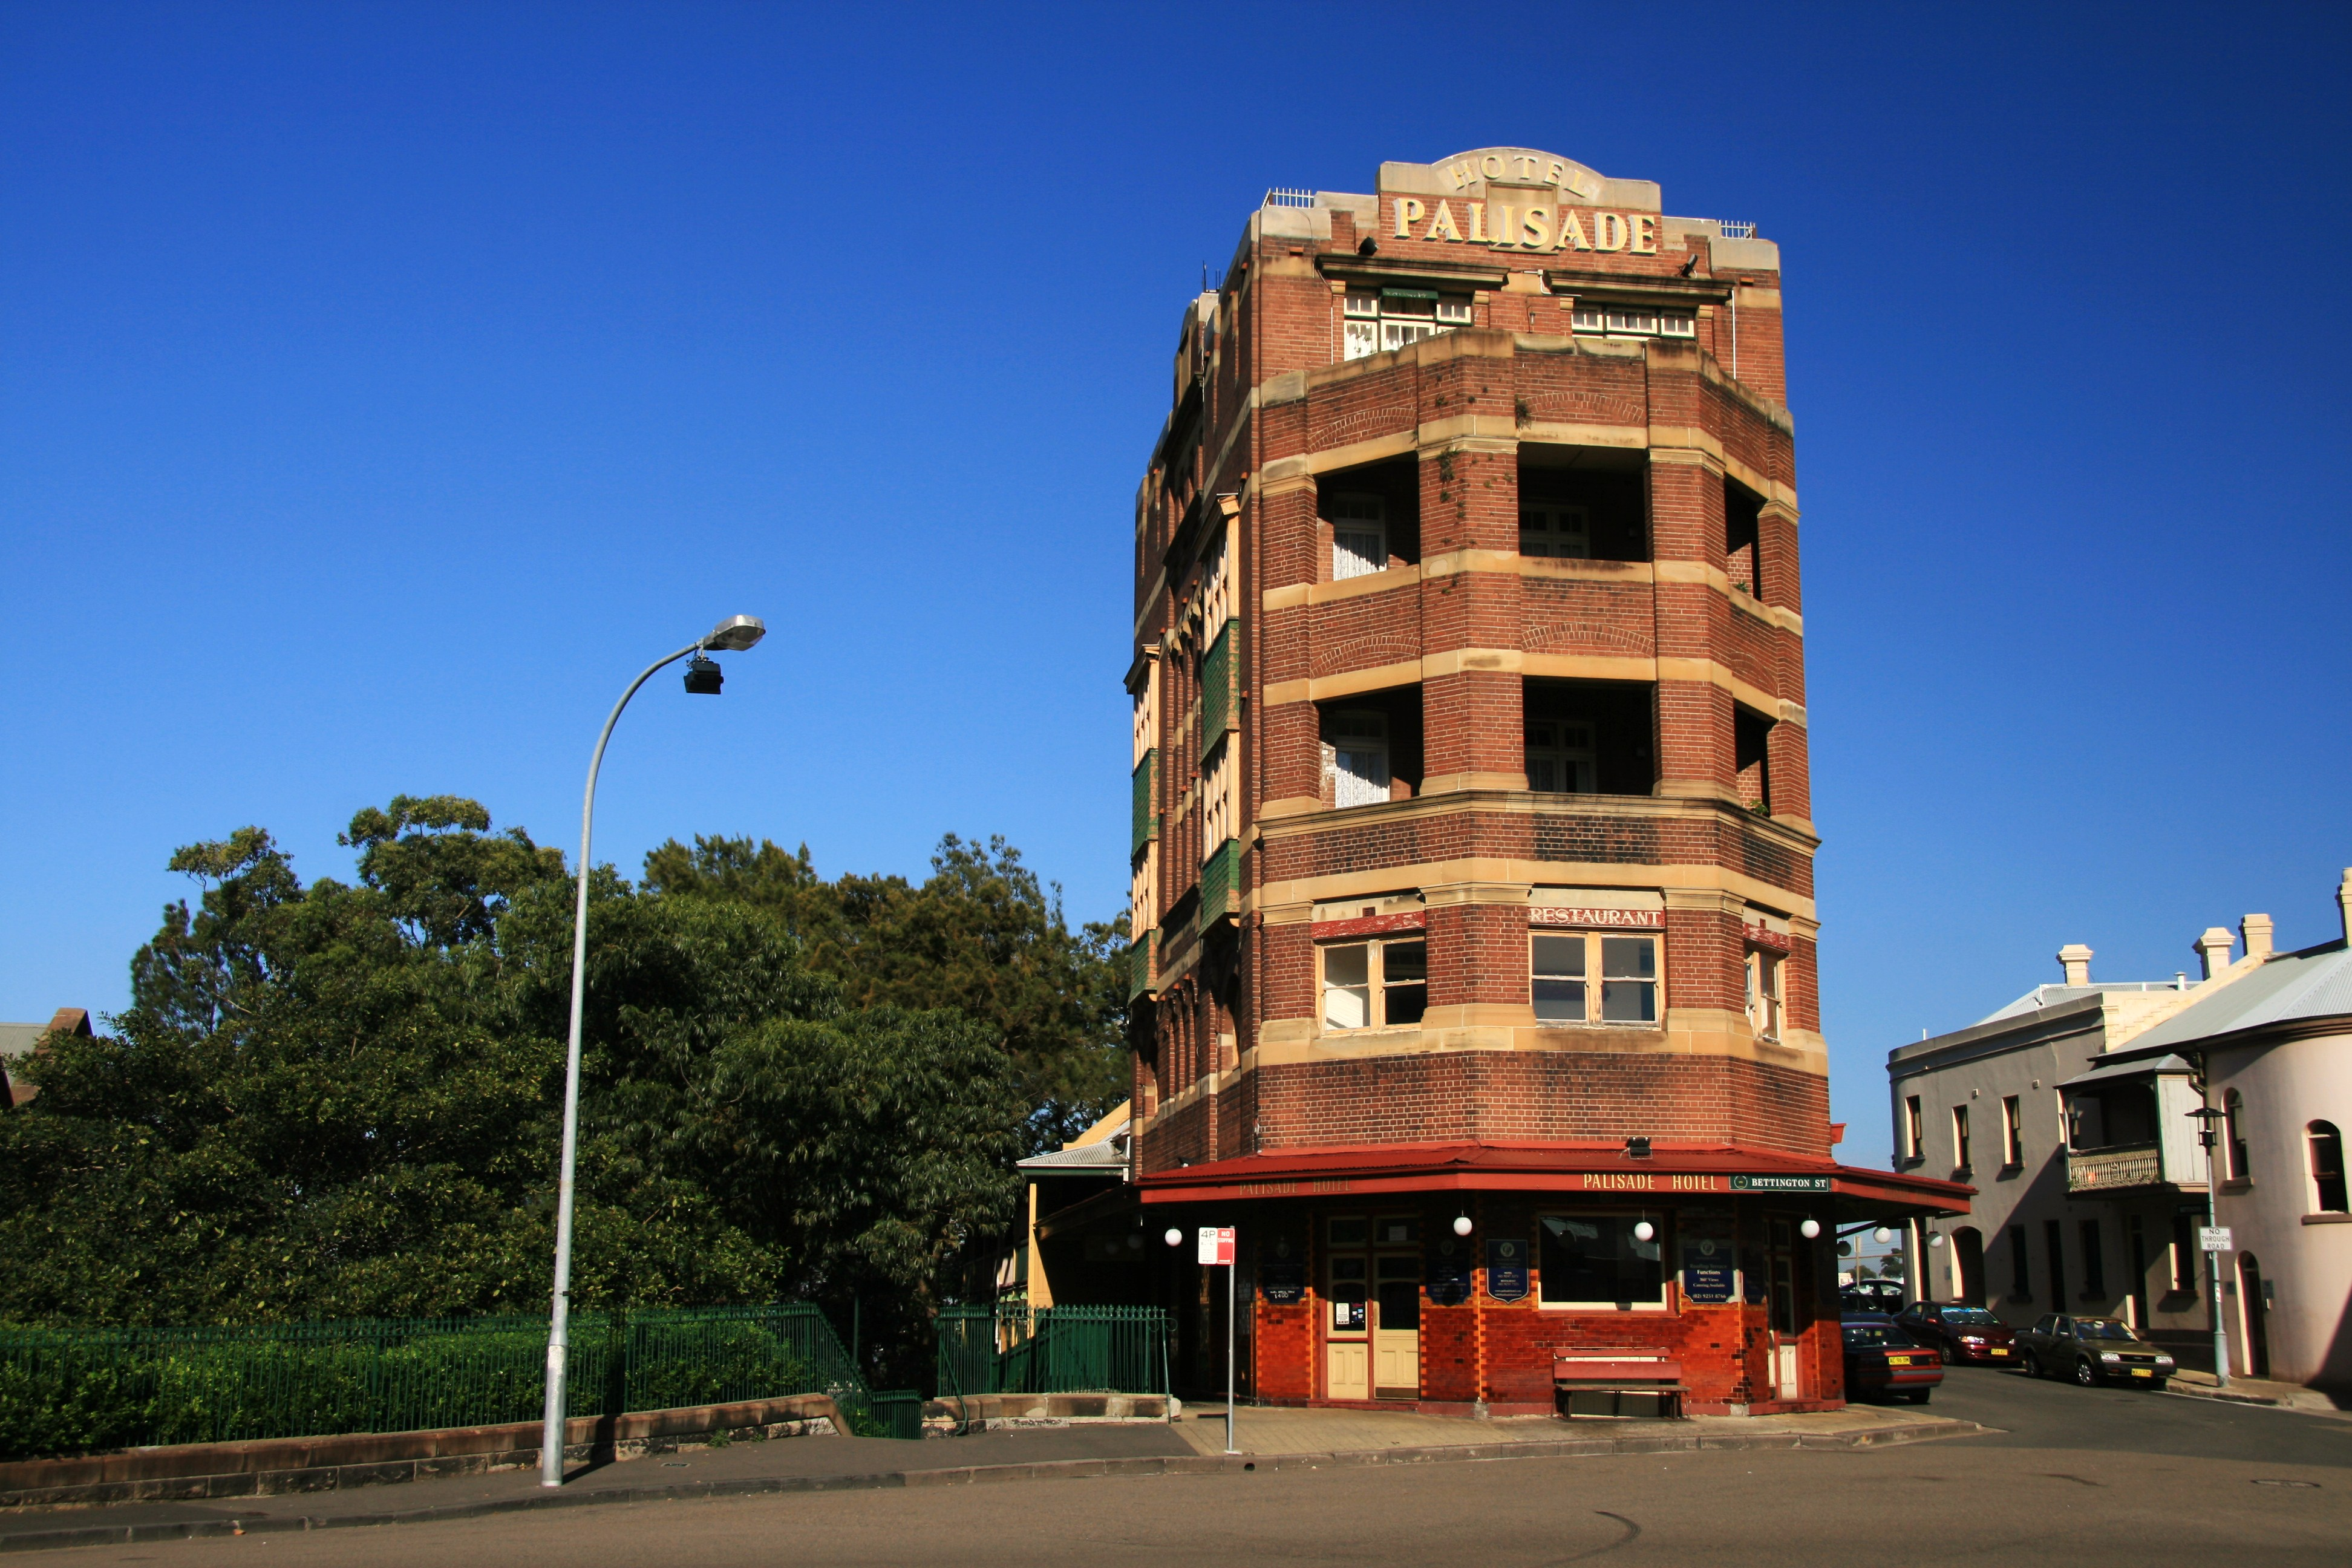 File:The Palisade Hotel, Millers Point.jpg - Wikipedia, the free ...: en.wikipedia.org/wiki/file:the_palisade_hotel,_millers_point.jpg